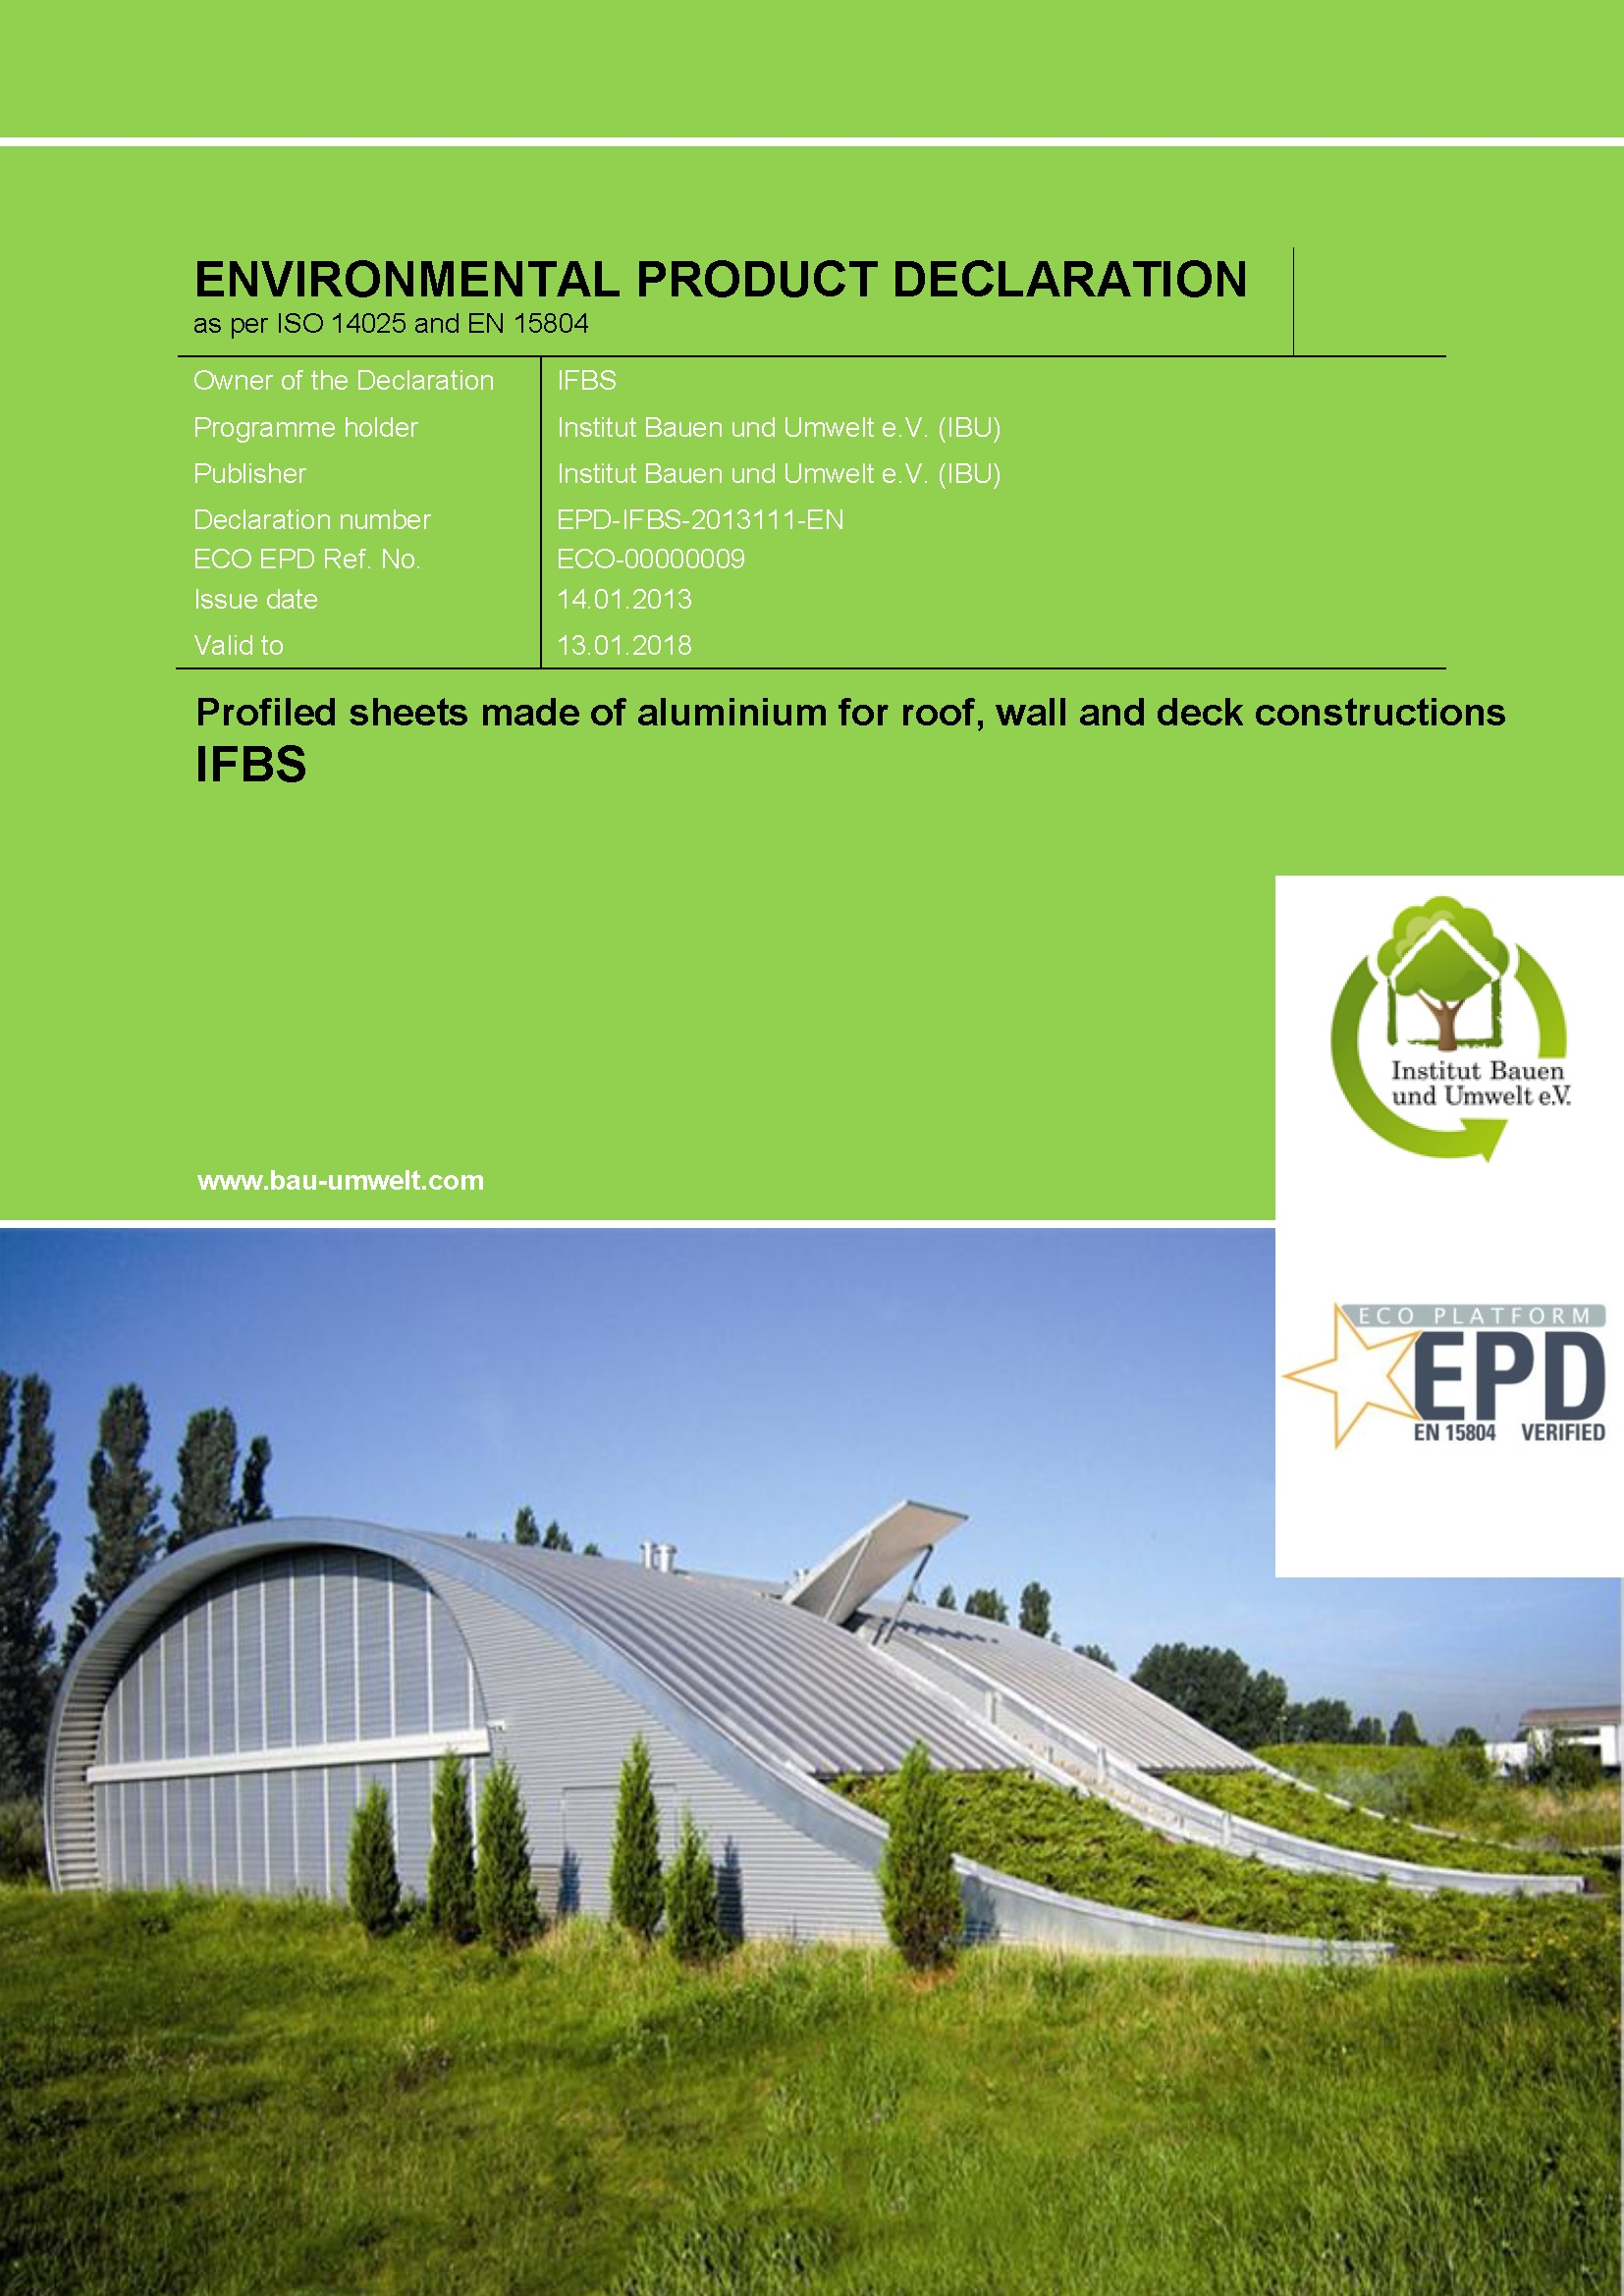 EPD for aluminium profiles